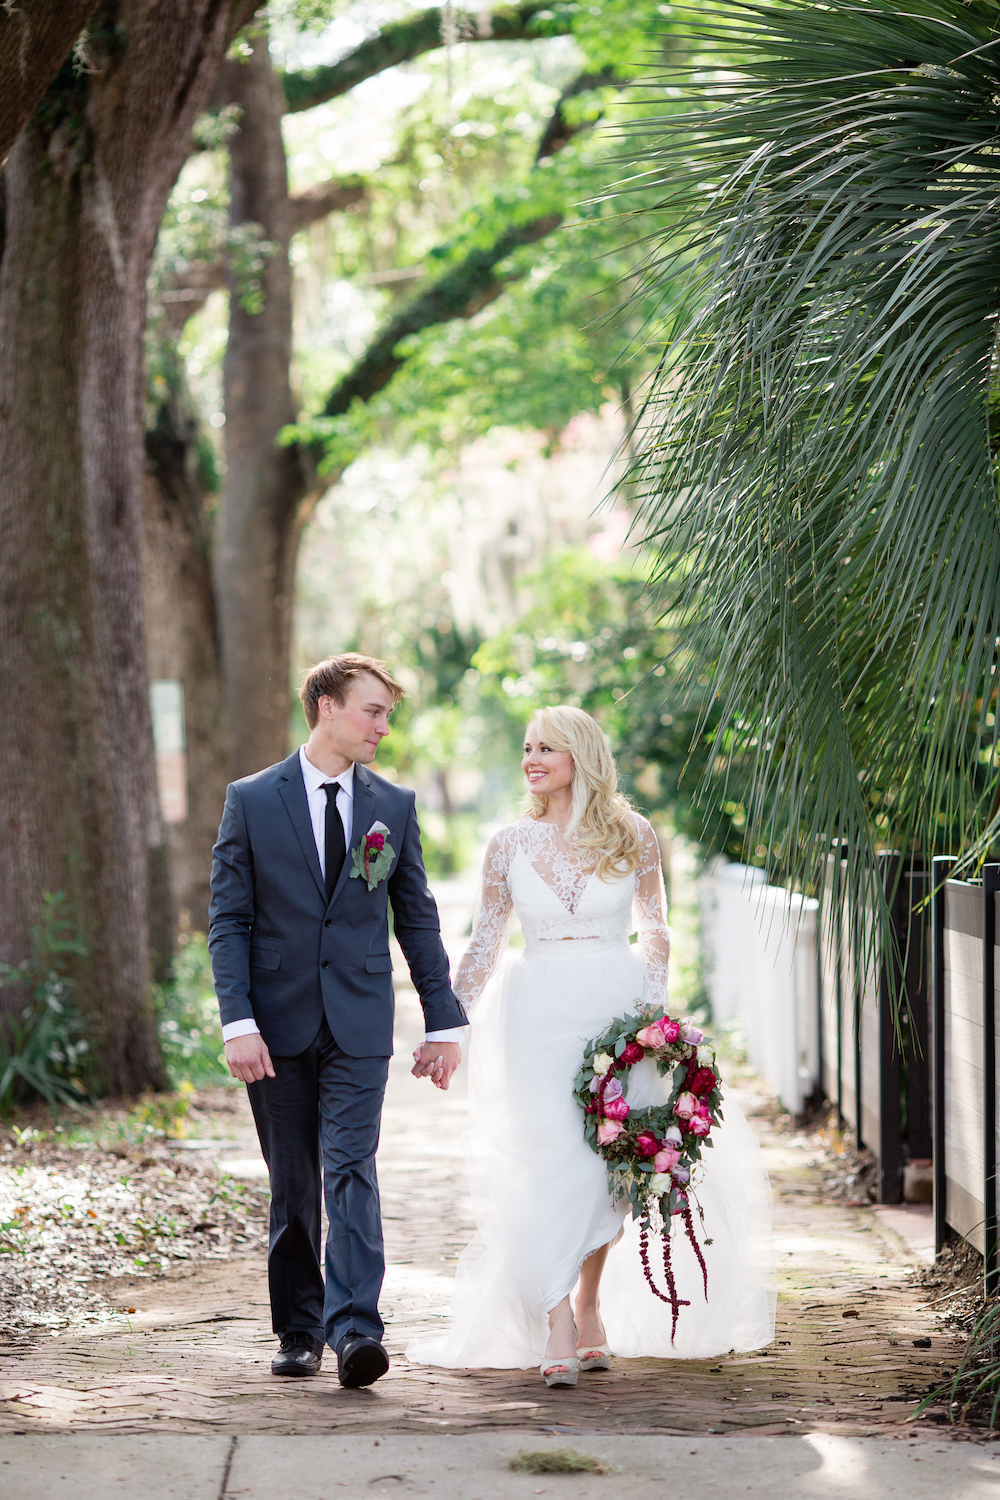 rustik-image-photography-kate-mcdonald-wedding-dress-ellis-gingerbread-house-savannah-gather-vintage-rentals-ivory-and-beau-bridal-boutique-savannah-bridal-boutique-savannah-weddings-6.jpg